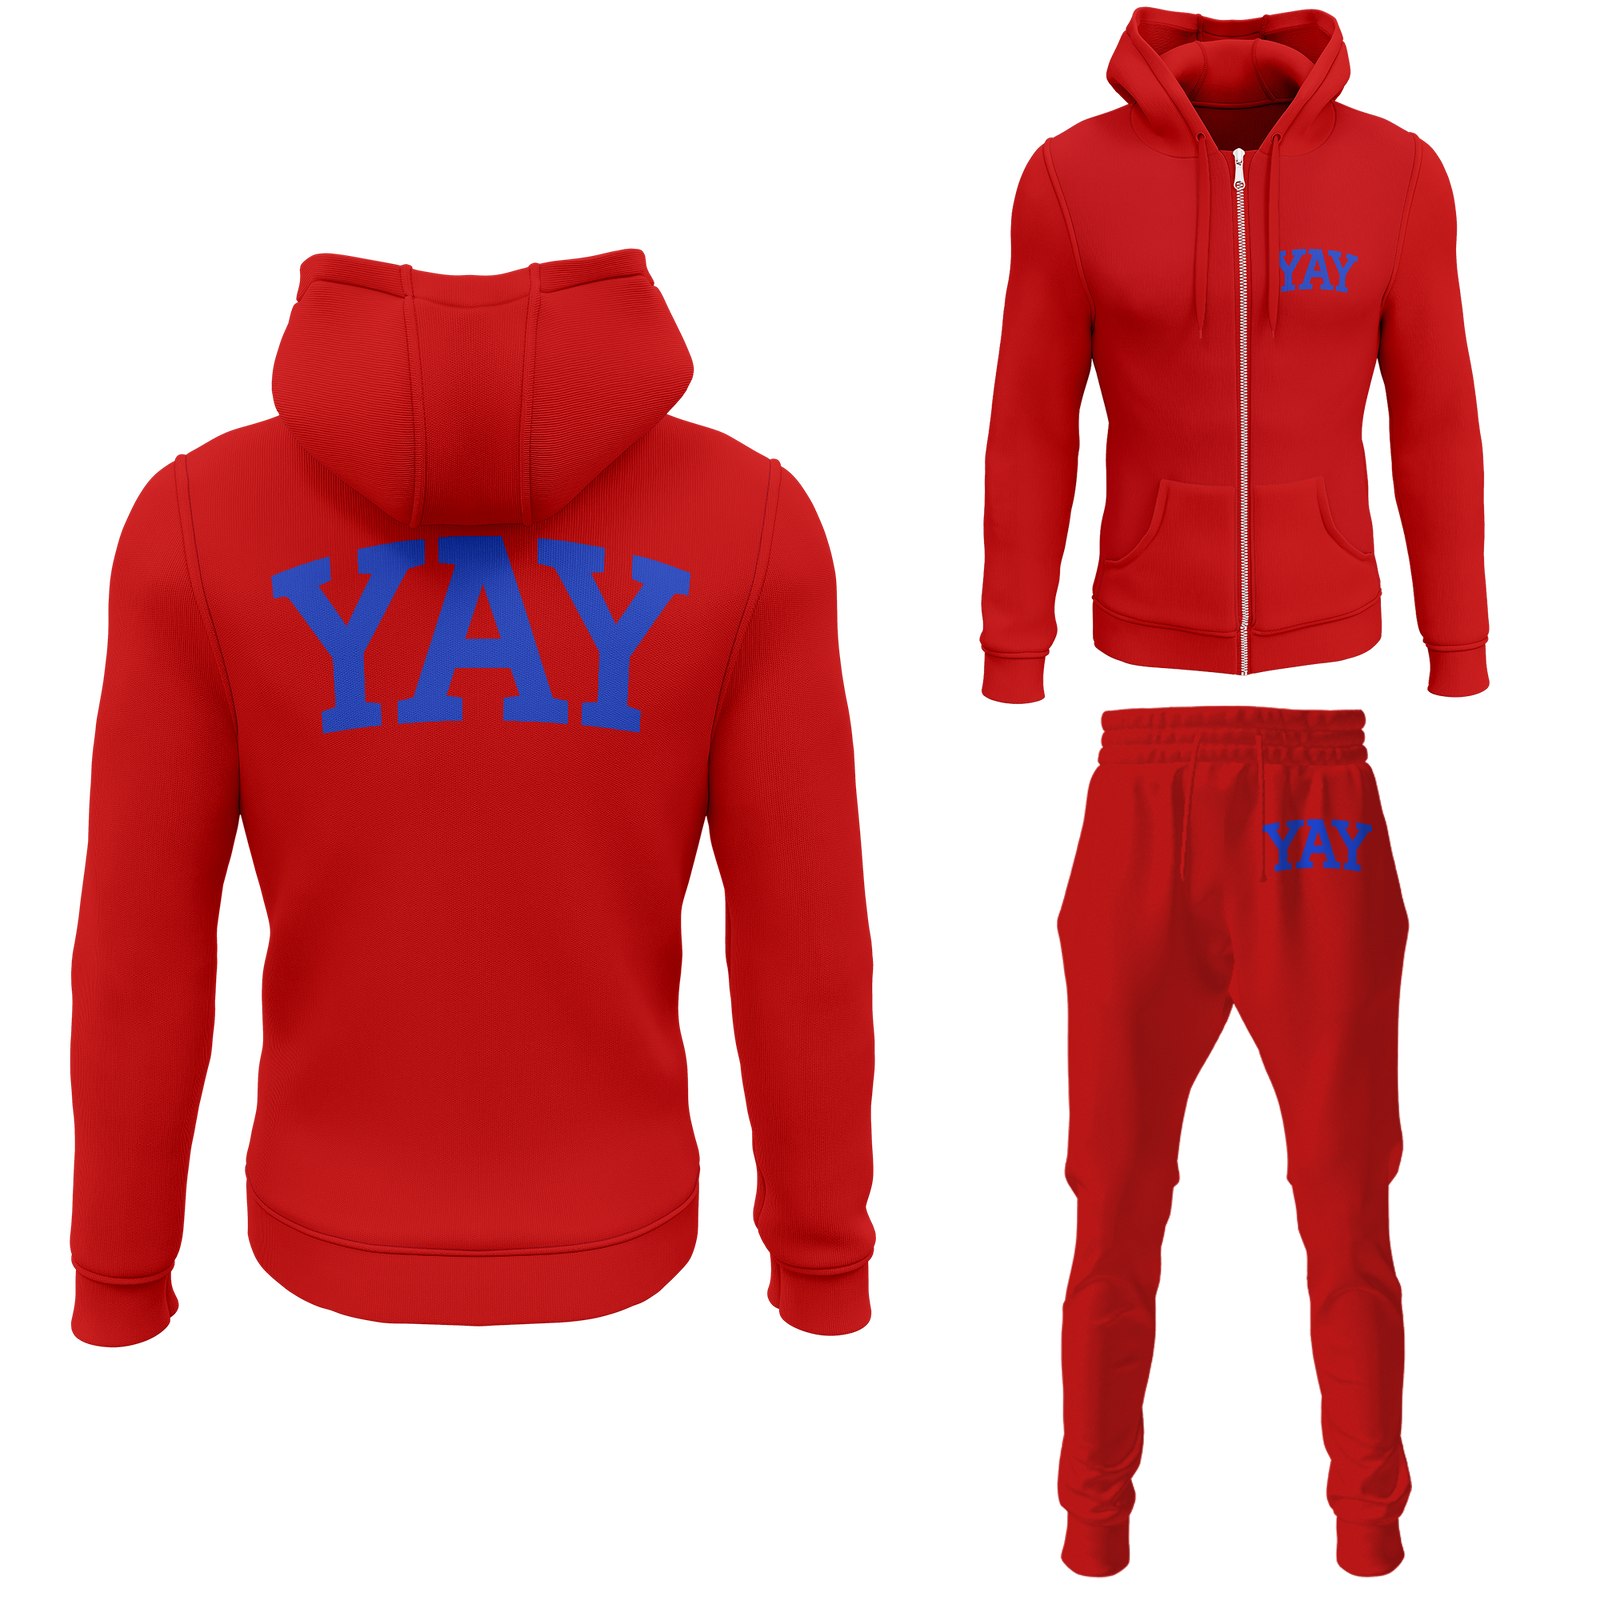 Red Mens Yay Block Zipped Sweatsuits